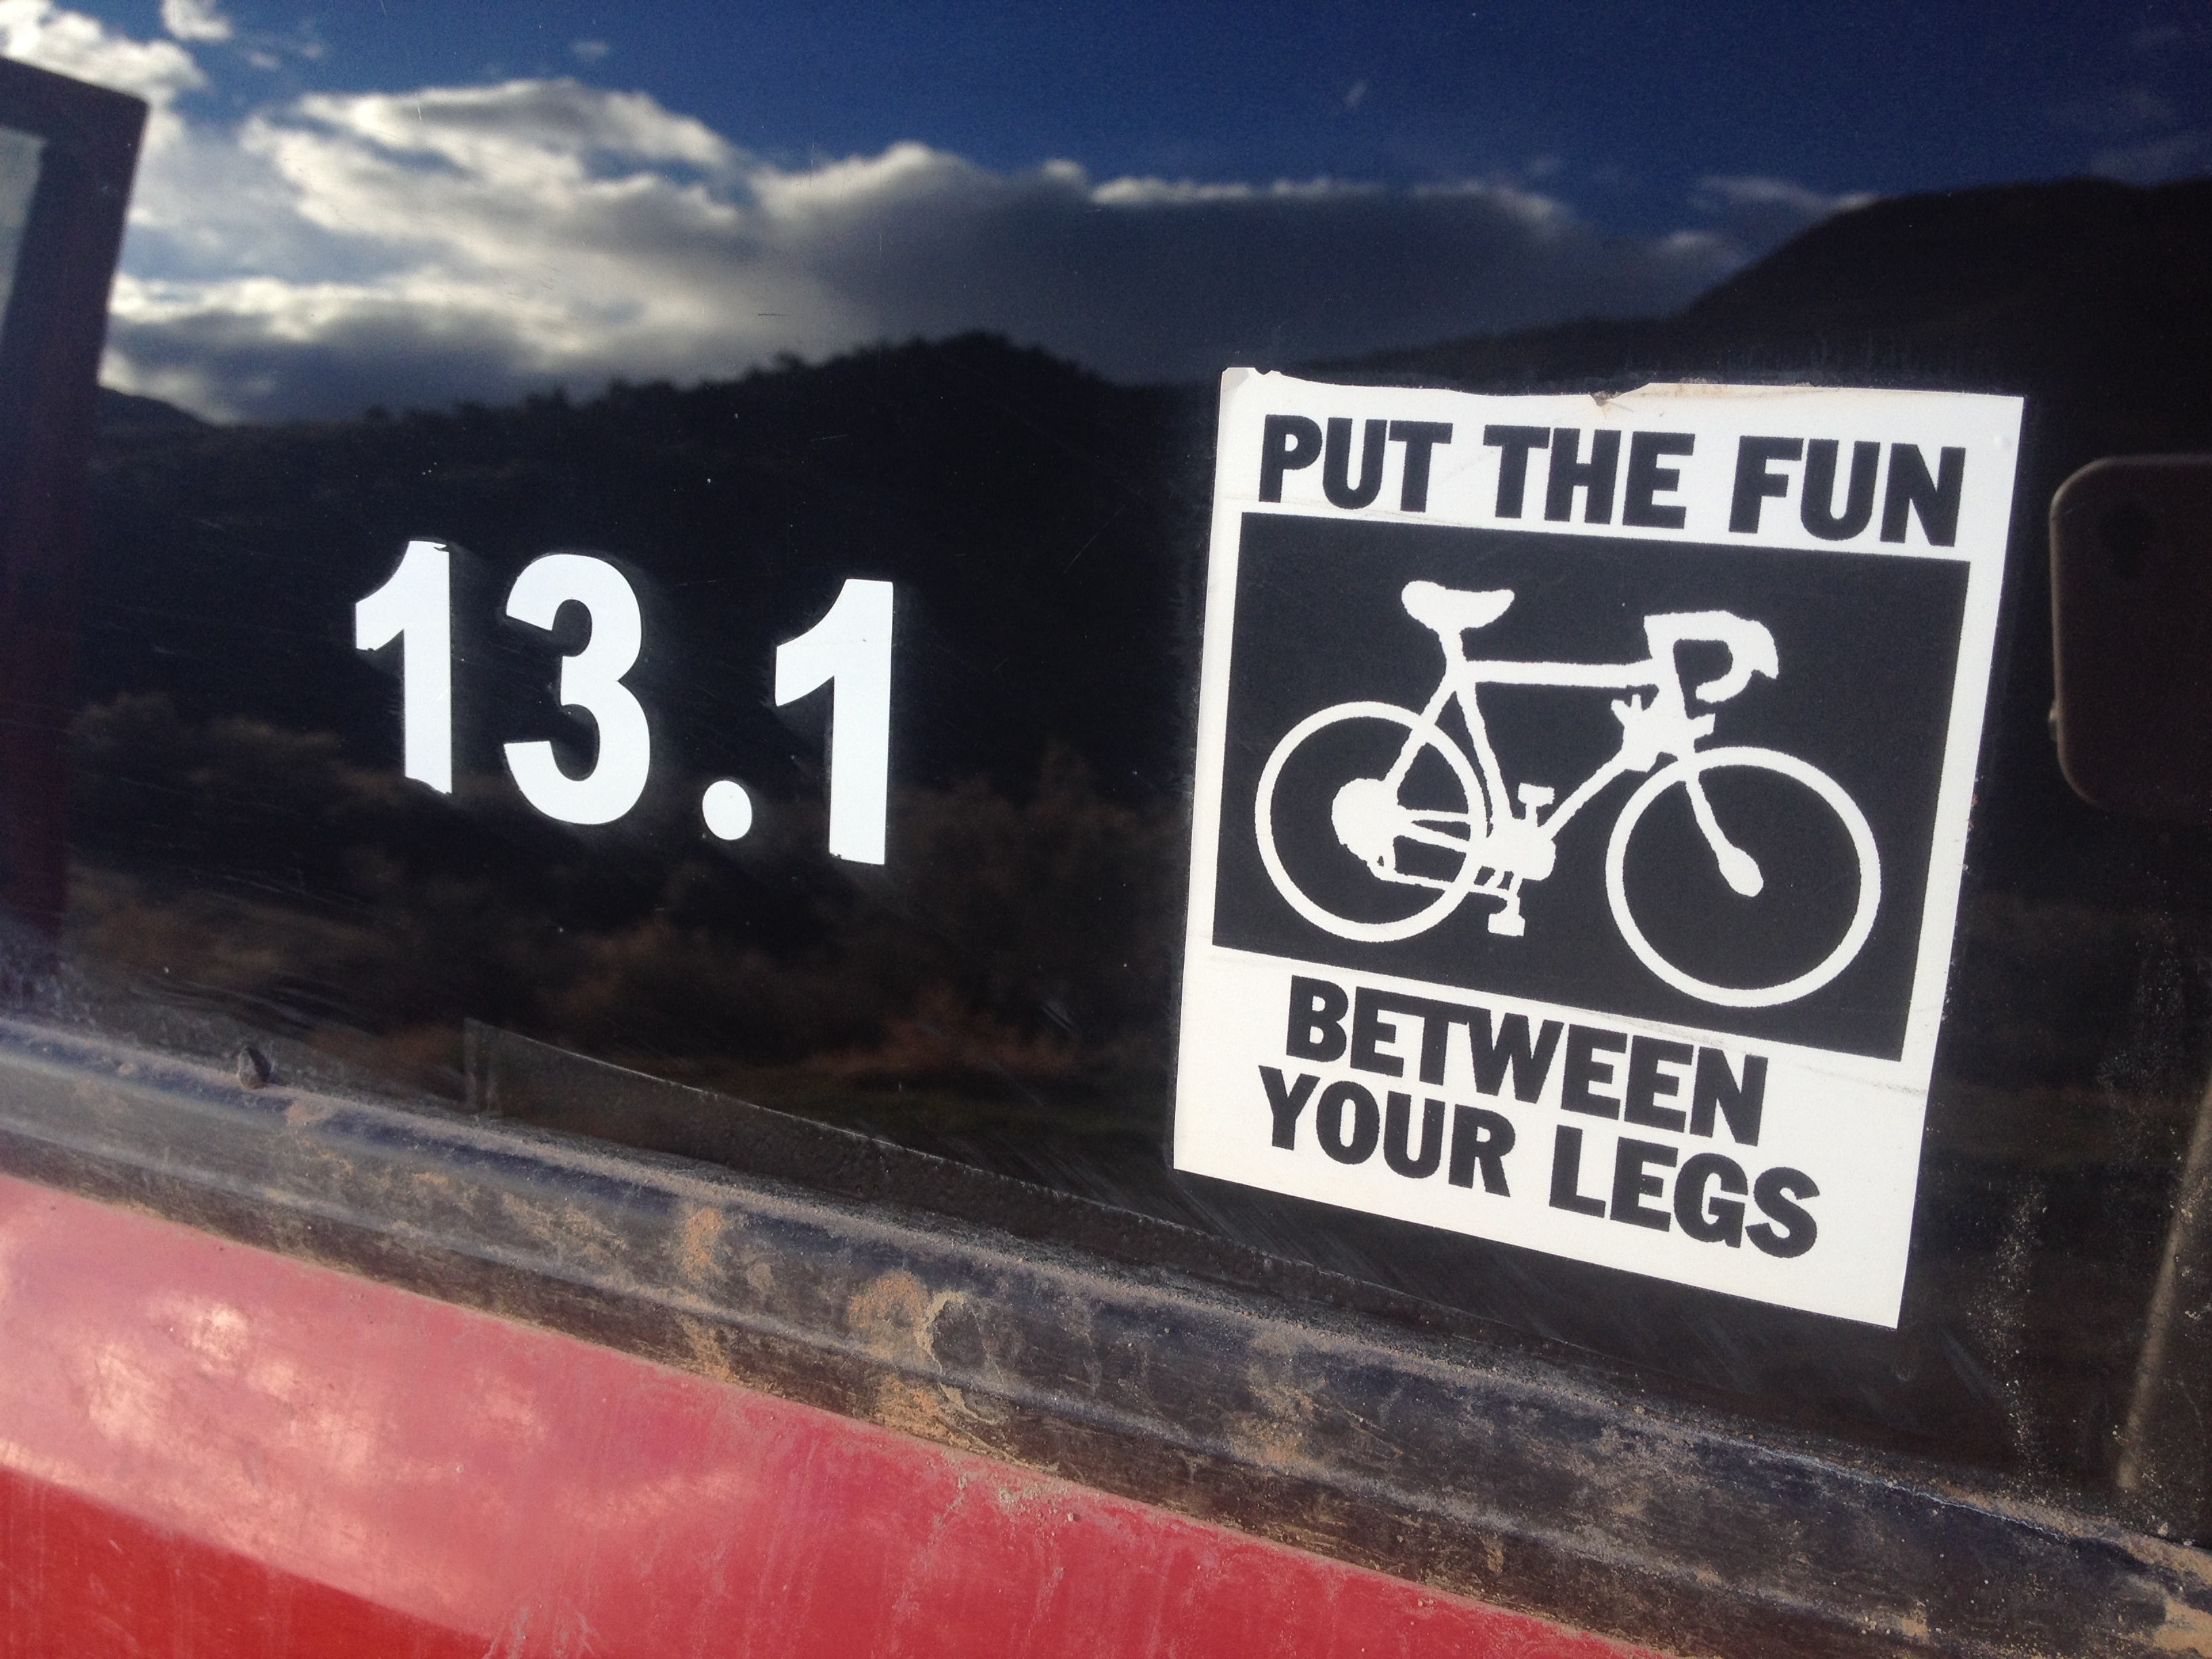 Stickers on my Jeep.